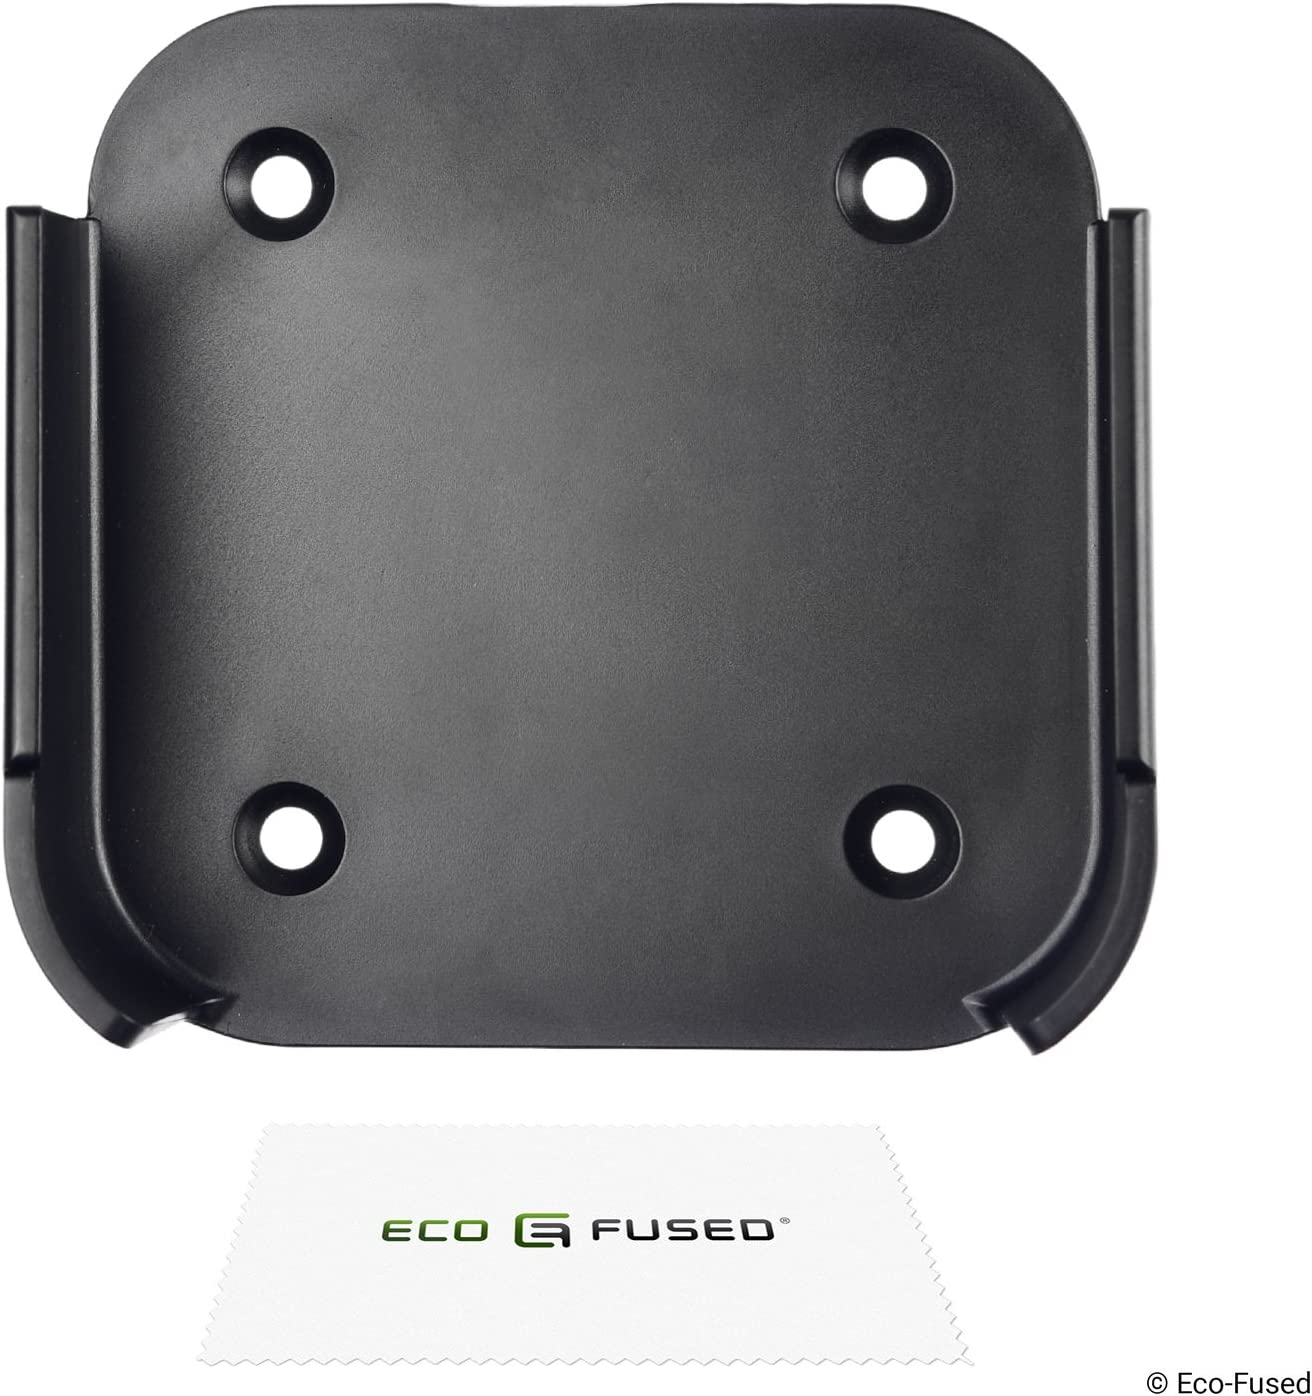 Eco-Fused Wall Mount Compatible with Apple TV 4 / Apple TV 4K - Holder Bracket Frame Easy to Install - Simply Attach, Insert and Connect